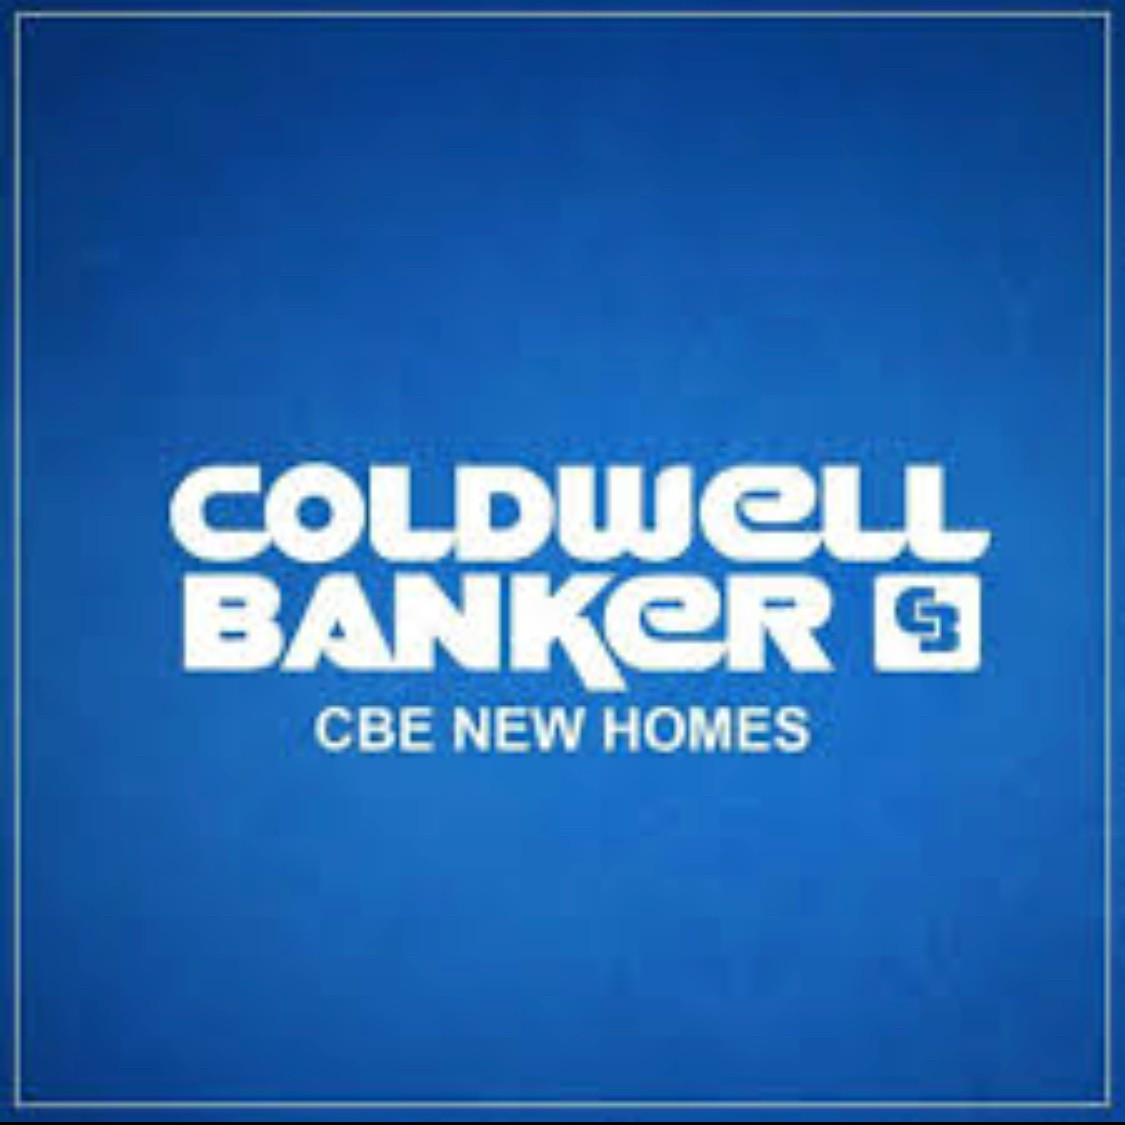 coldwell banker's logo